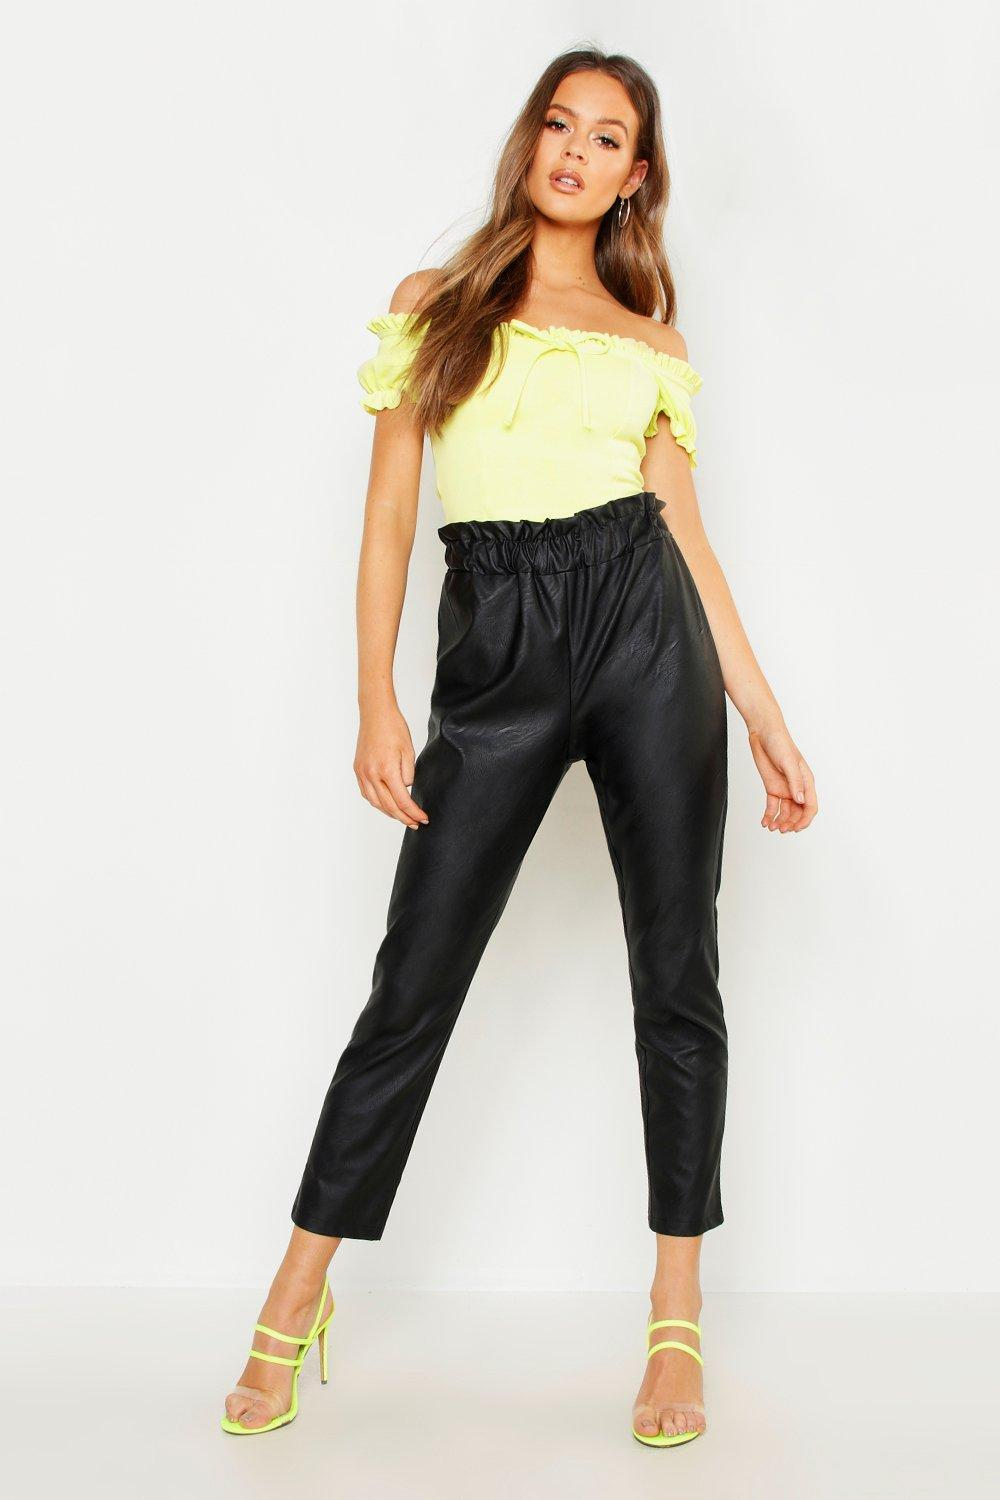 8a505ab4d2c8 Lyst - Boohoo Paperbag Waist Leather Look Pu Trouser in Black